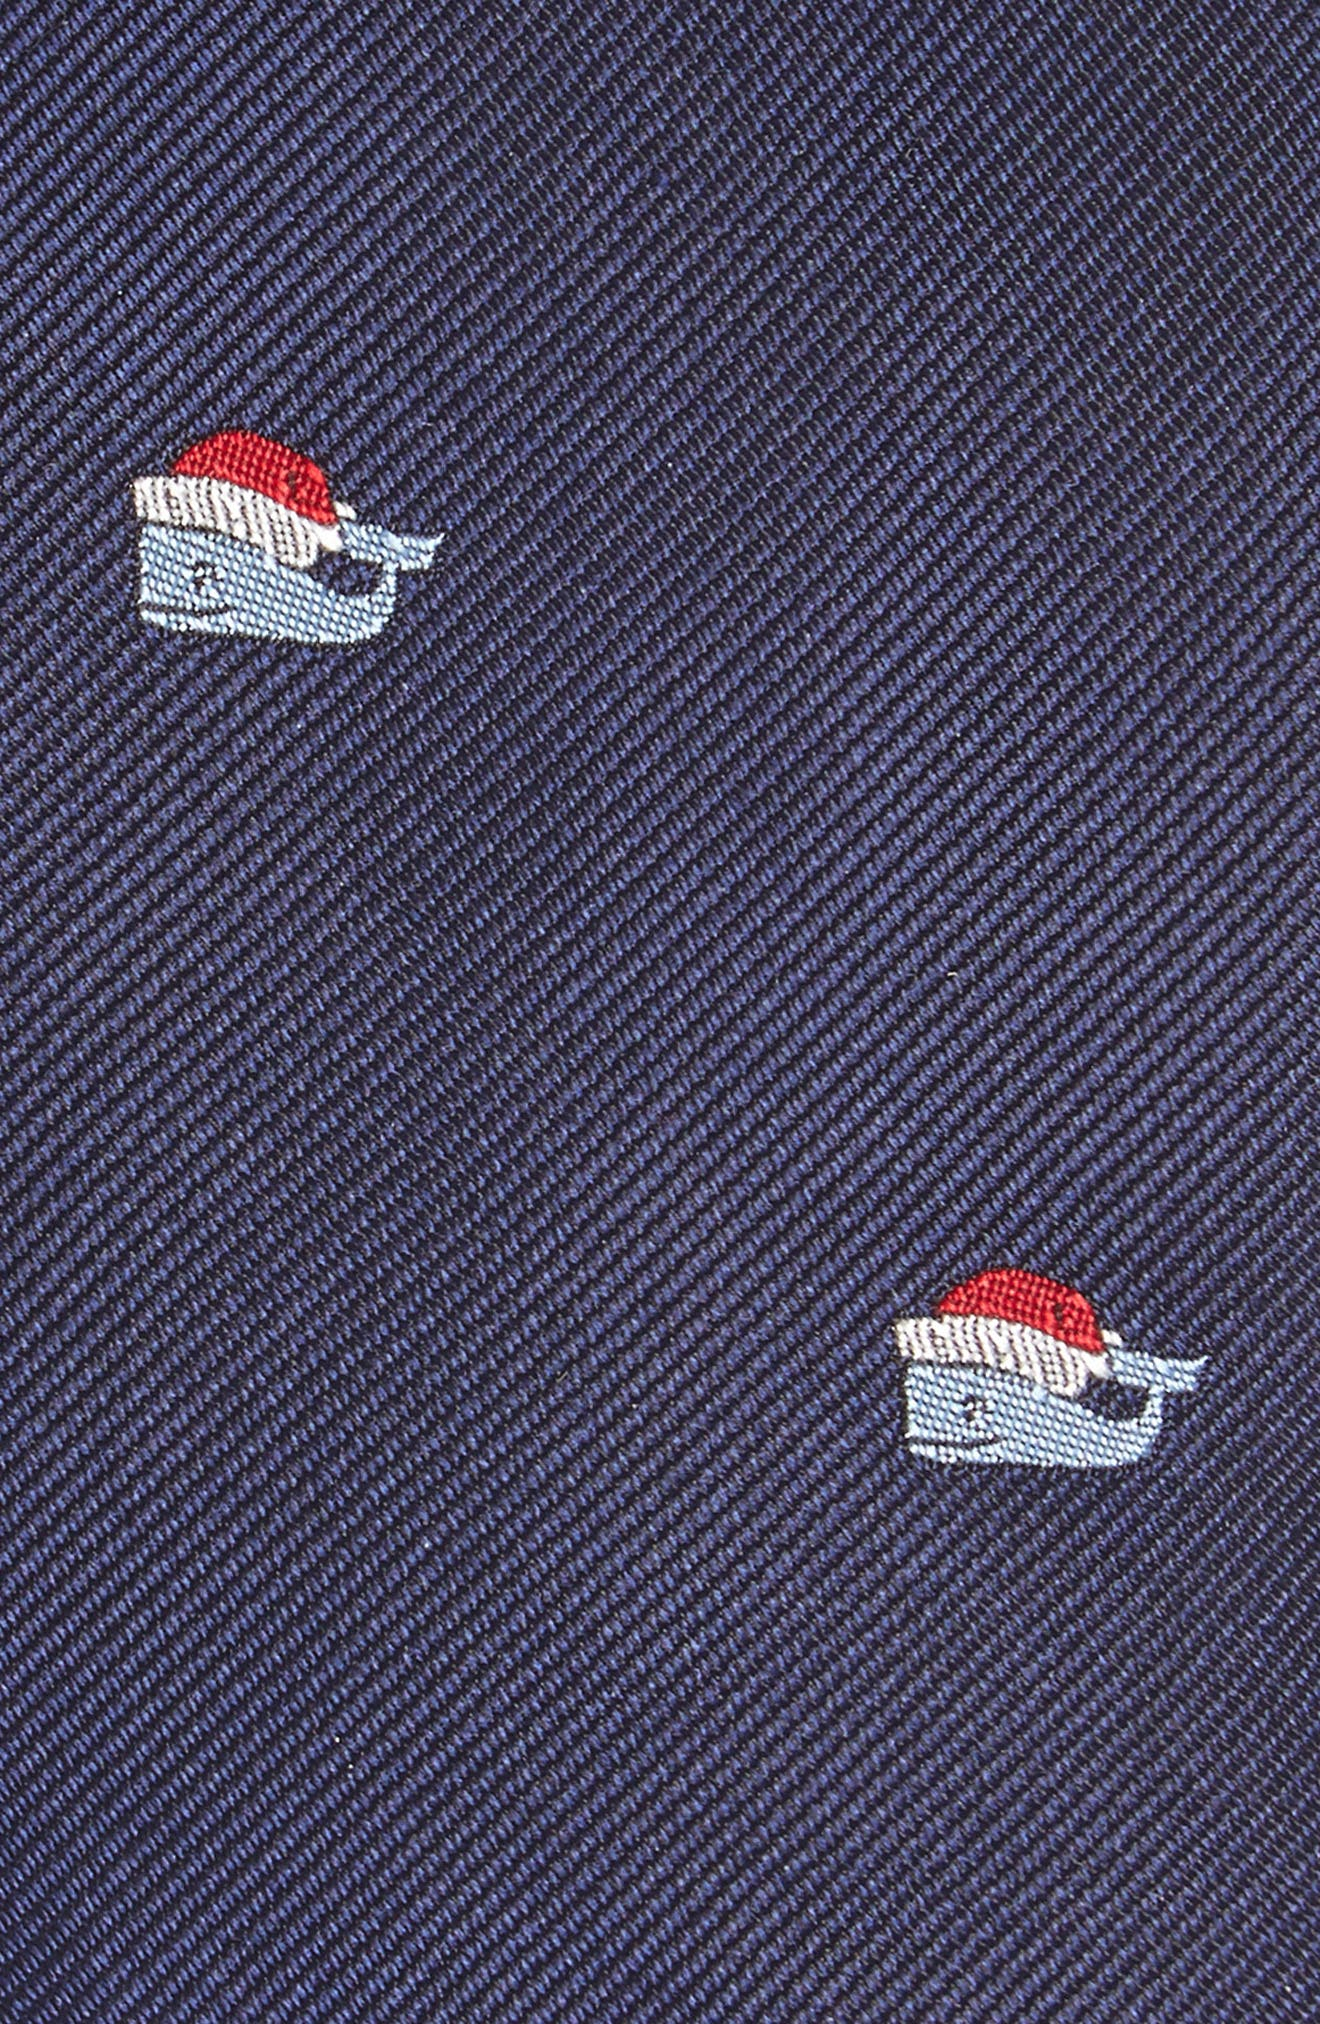 Santa Whale Silk Tie,                             Alternate thumbnail 2, color,                             Vineyard Navy